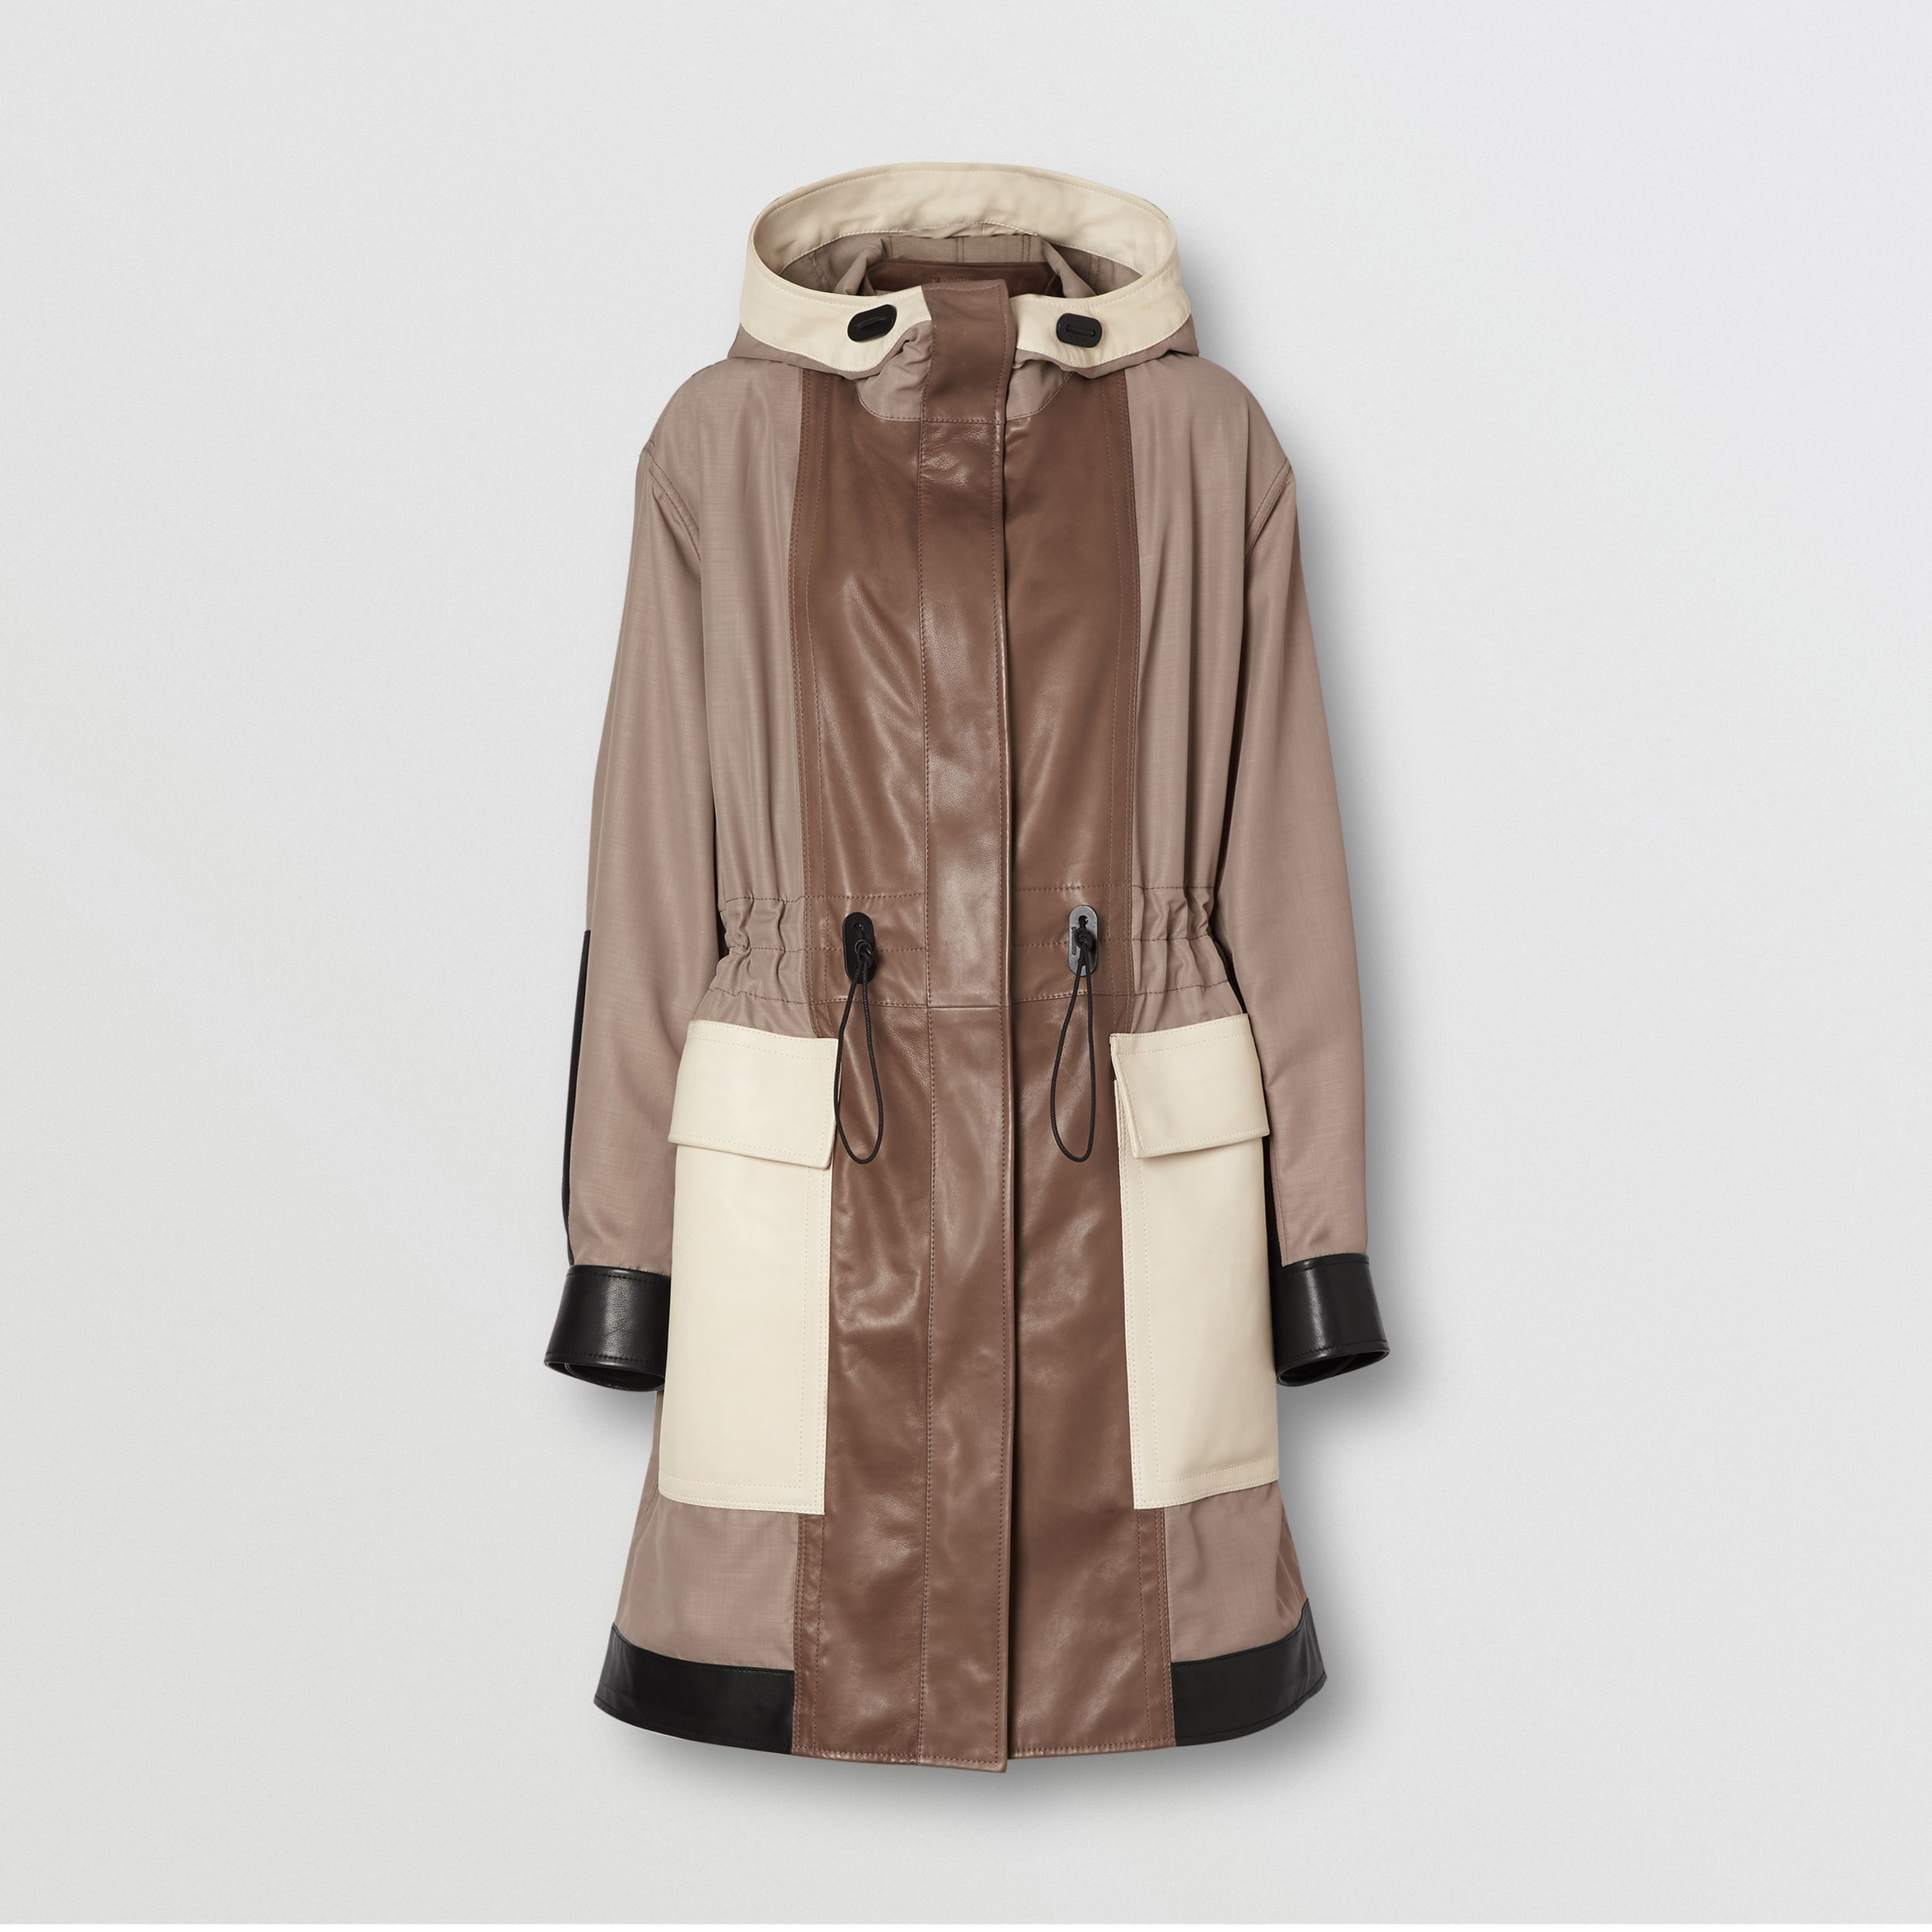 Leather Panelled Nylon Hooded Parka in Warm Taupe | Burberry - 4